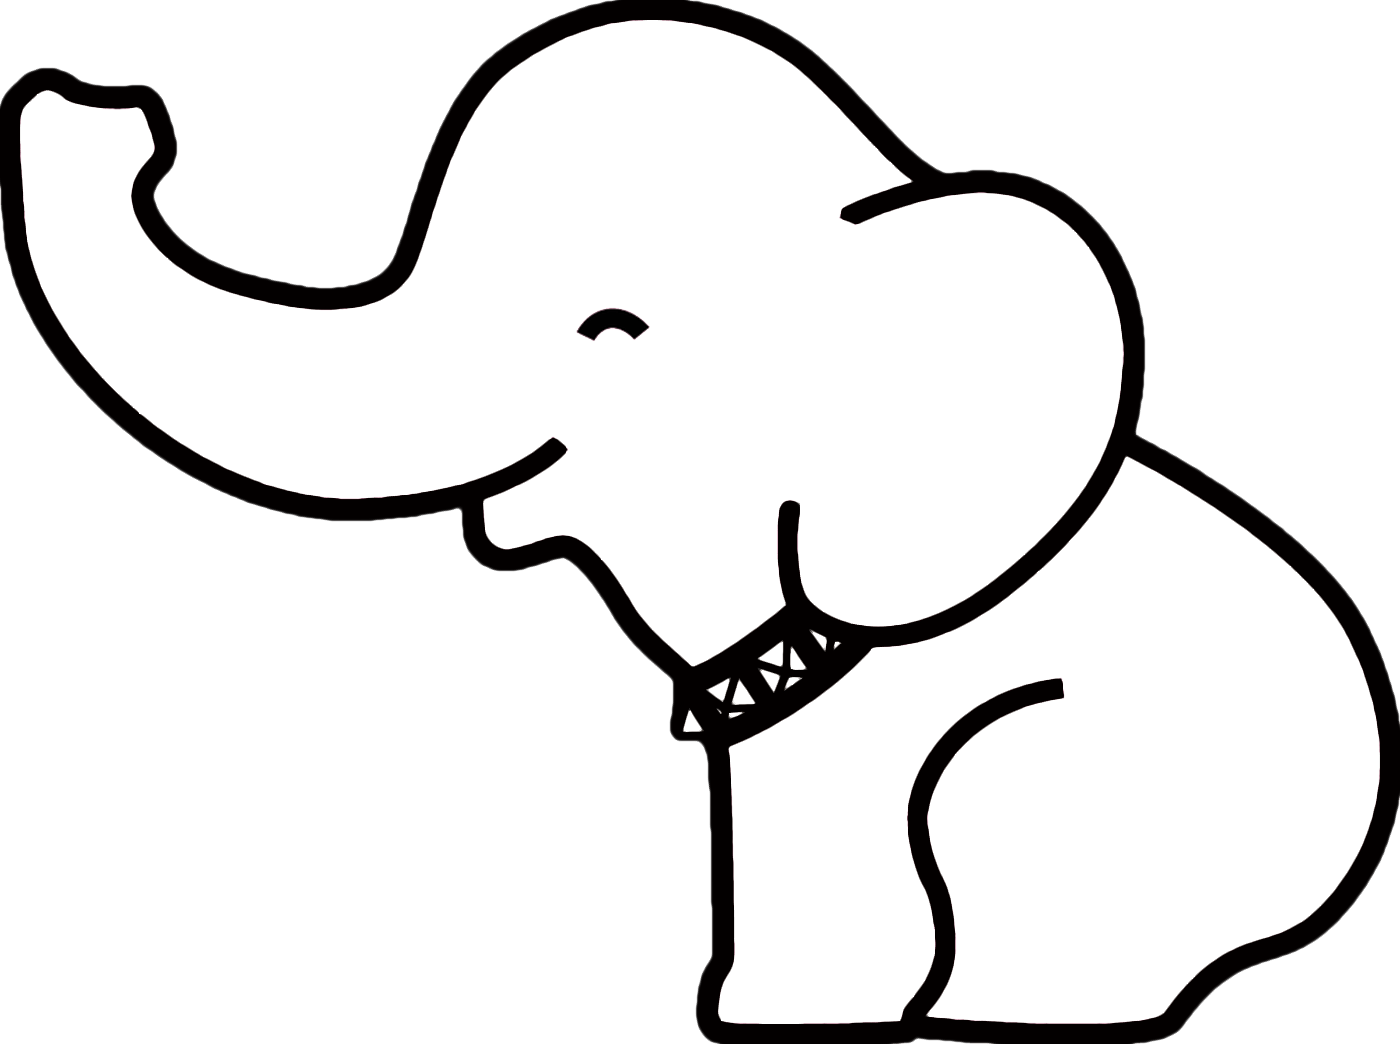 Inspirational drawing. Drawings ideas elephant easy